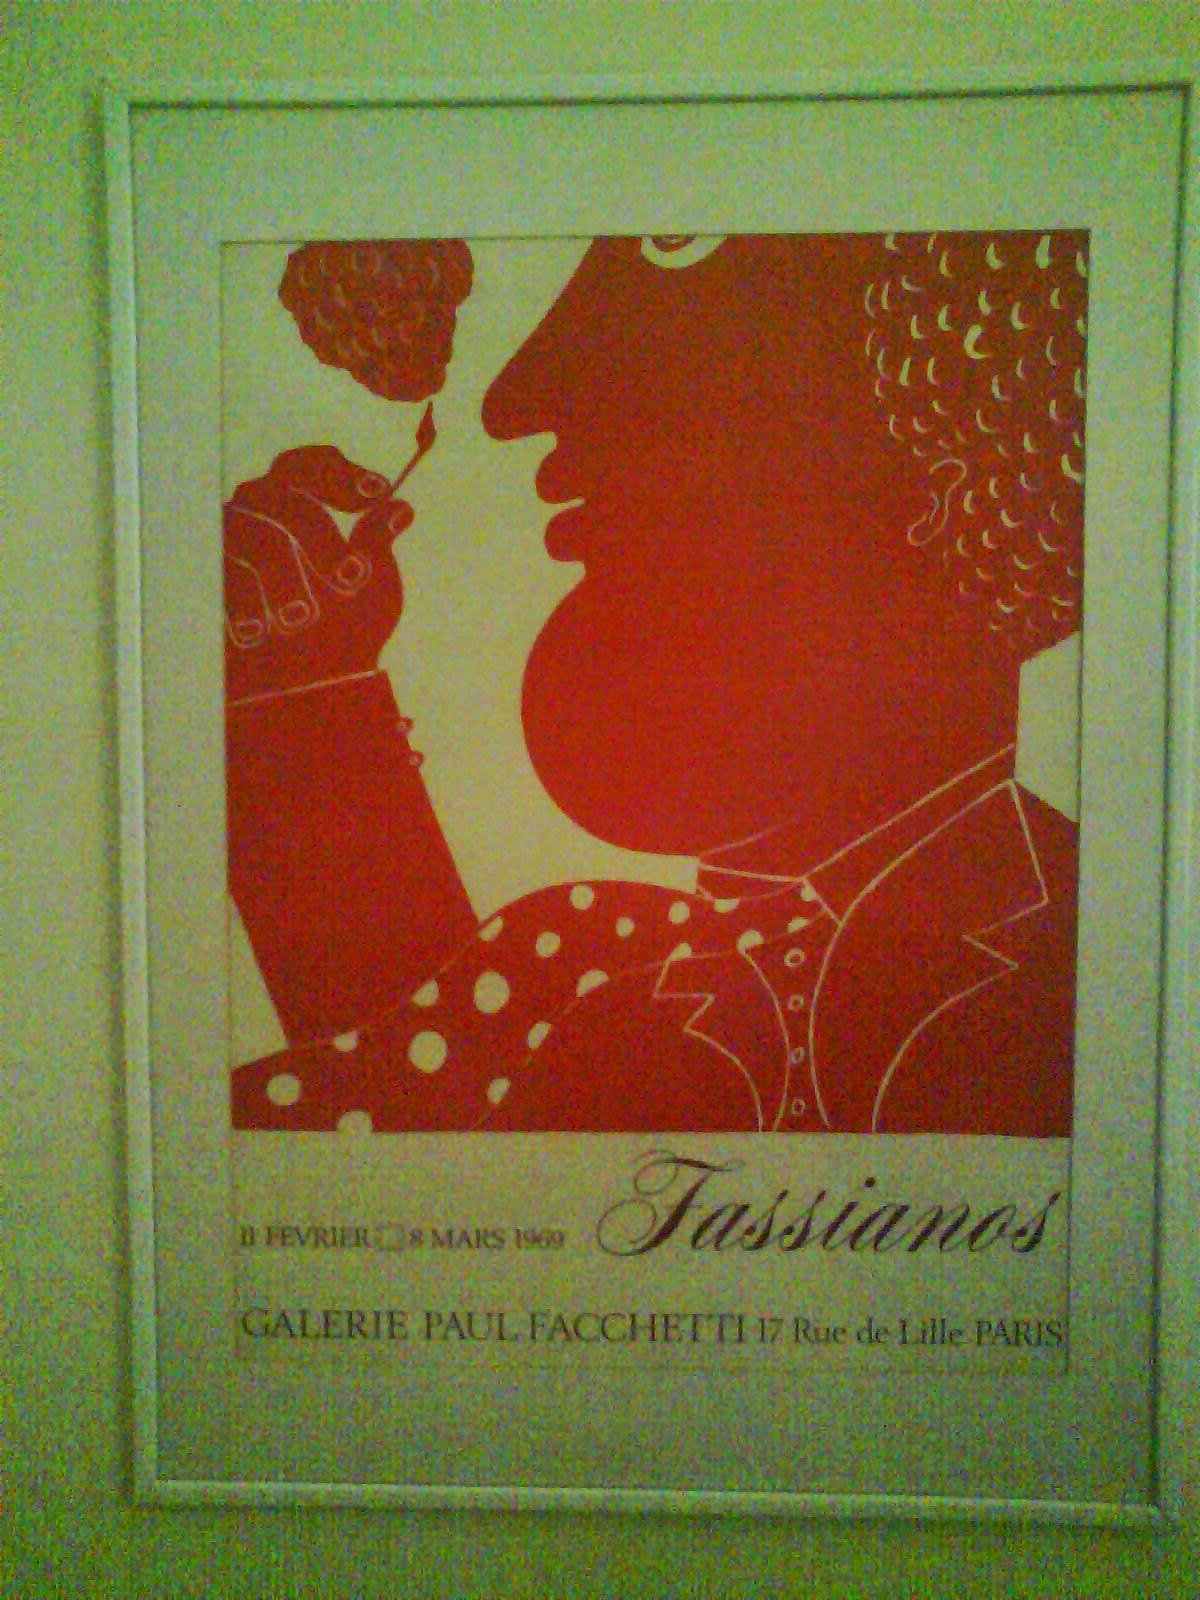 Fasssianos poster